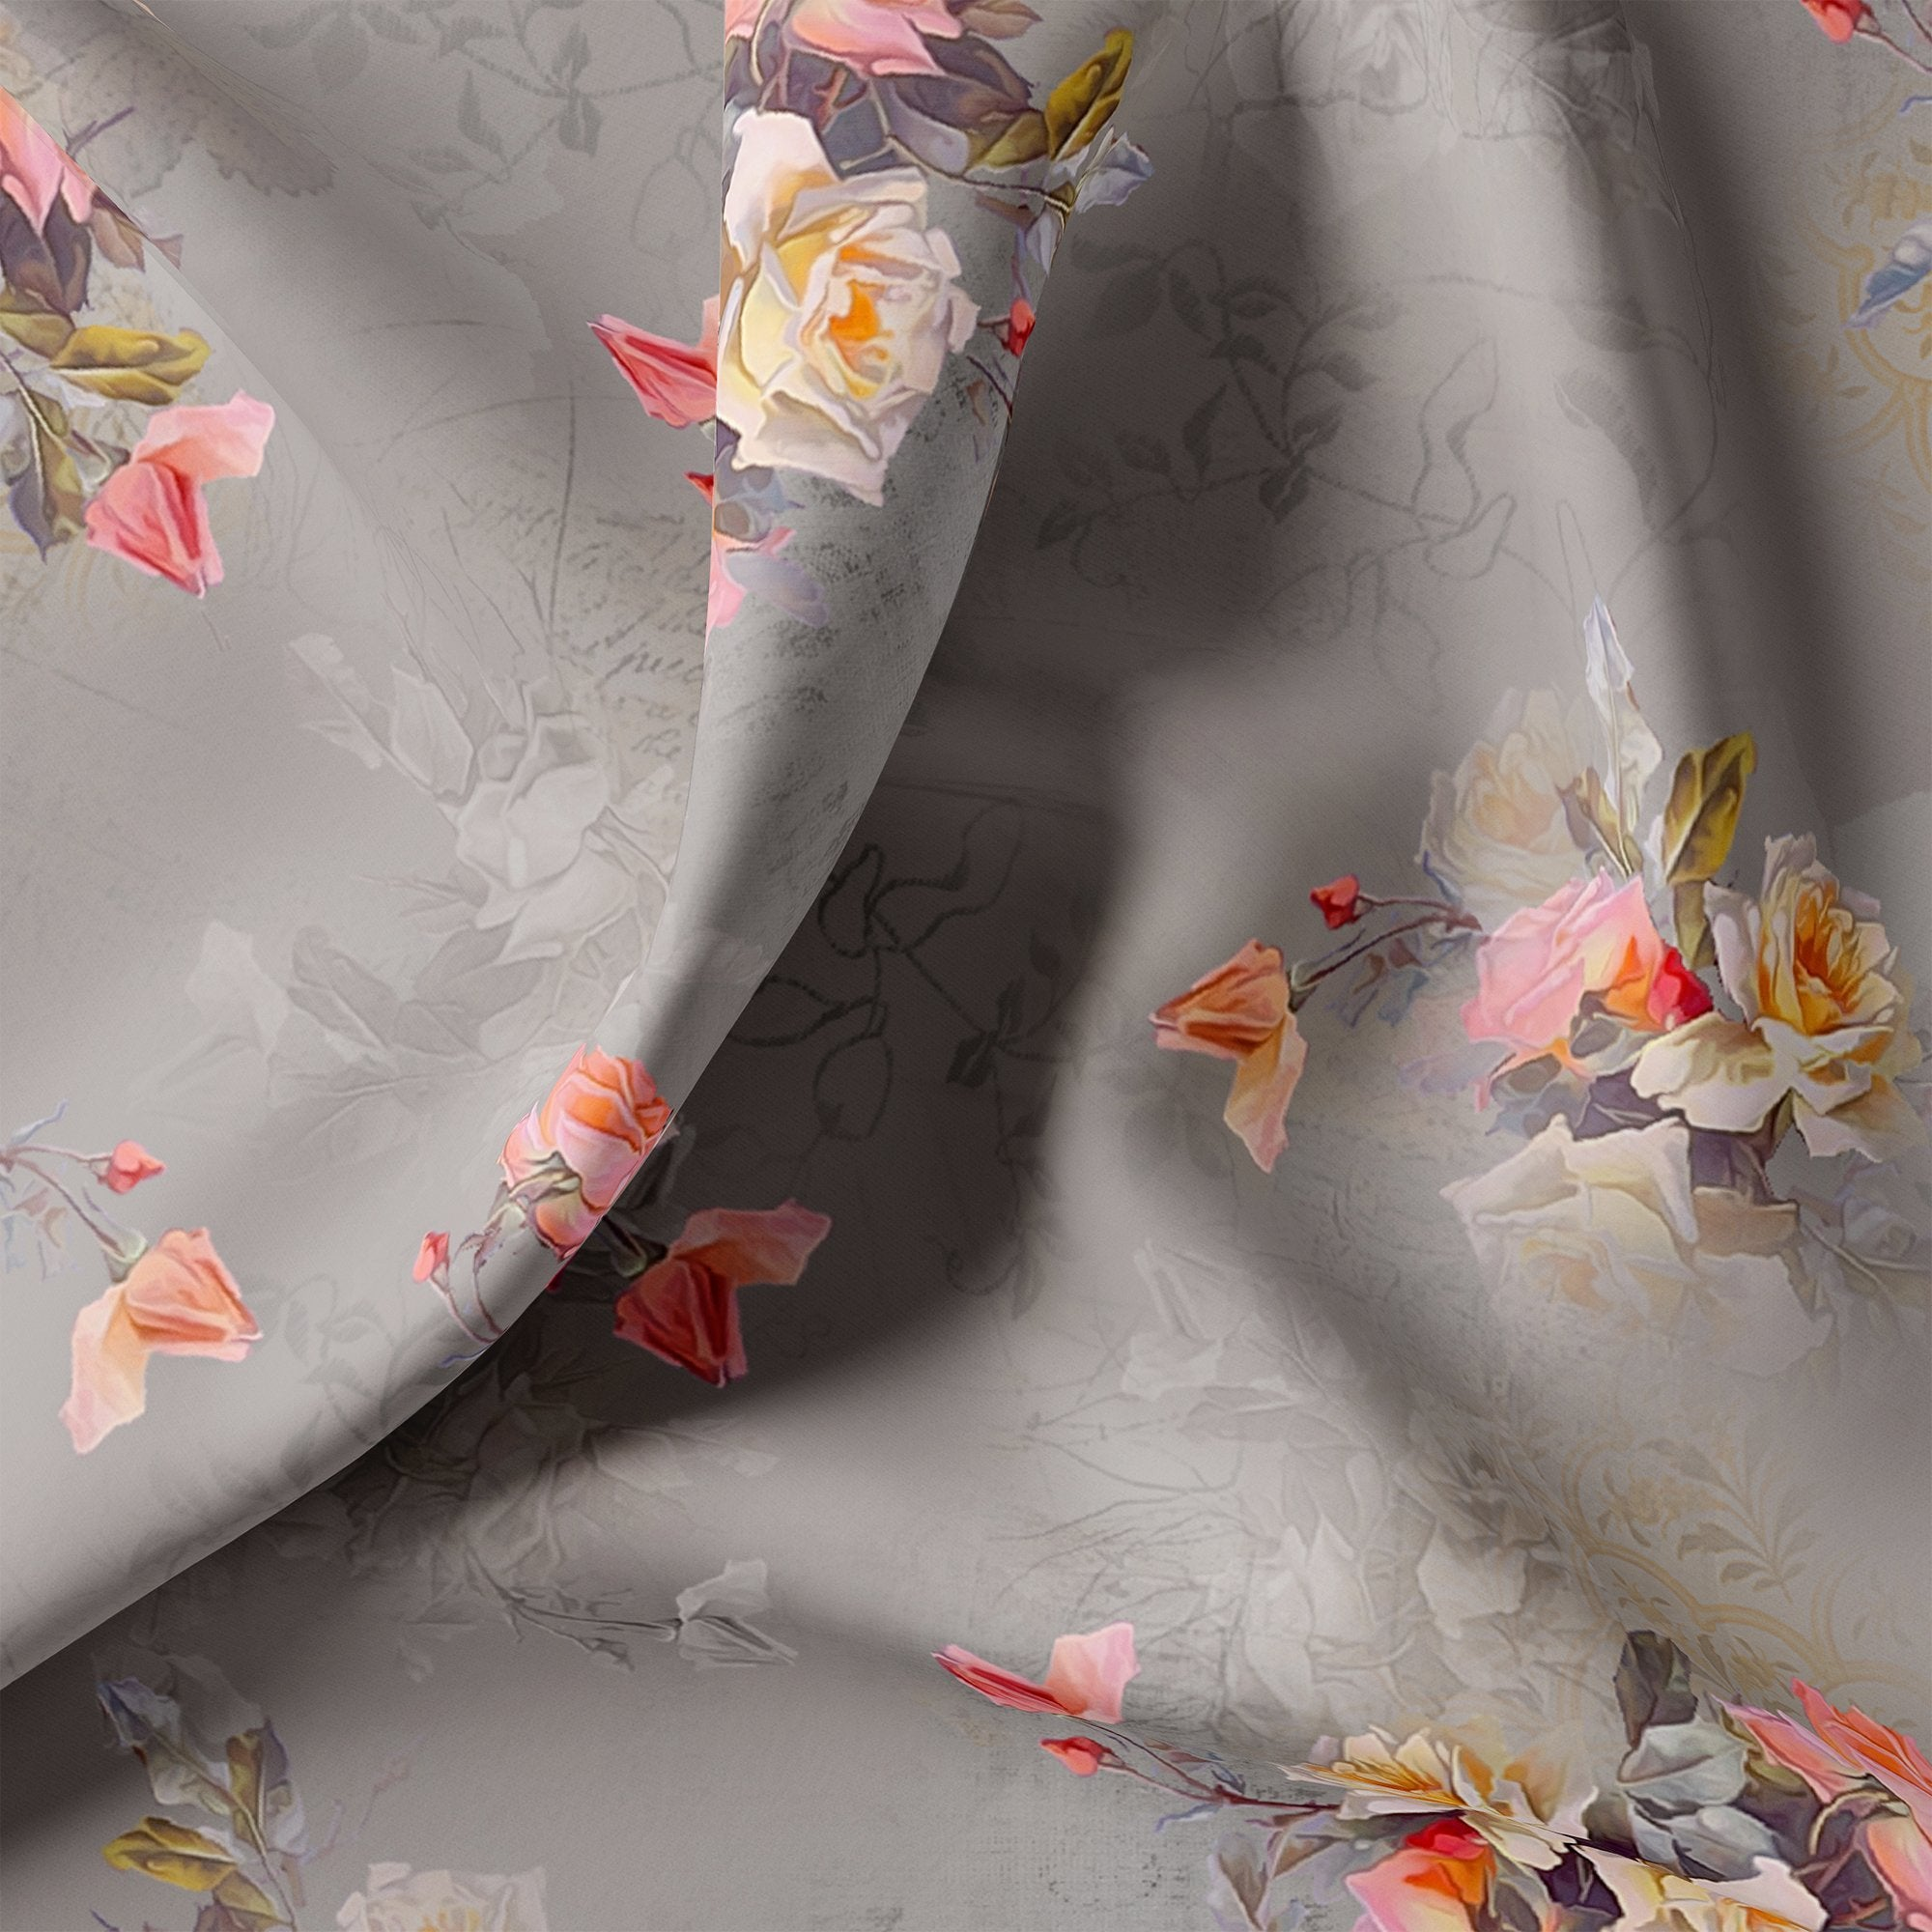 Pixel Floral Laying Over Grey Digital Printed Fabric - FAB VOGUE Studio. Shop Fabric @ www.fabvoguestudio.com